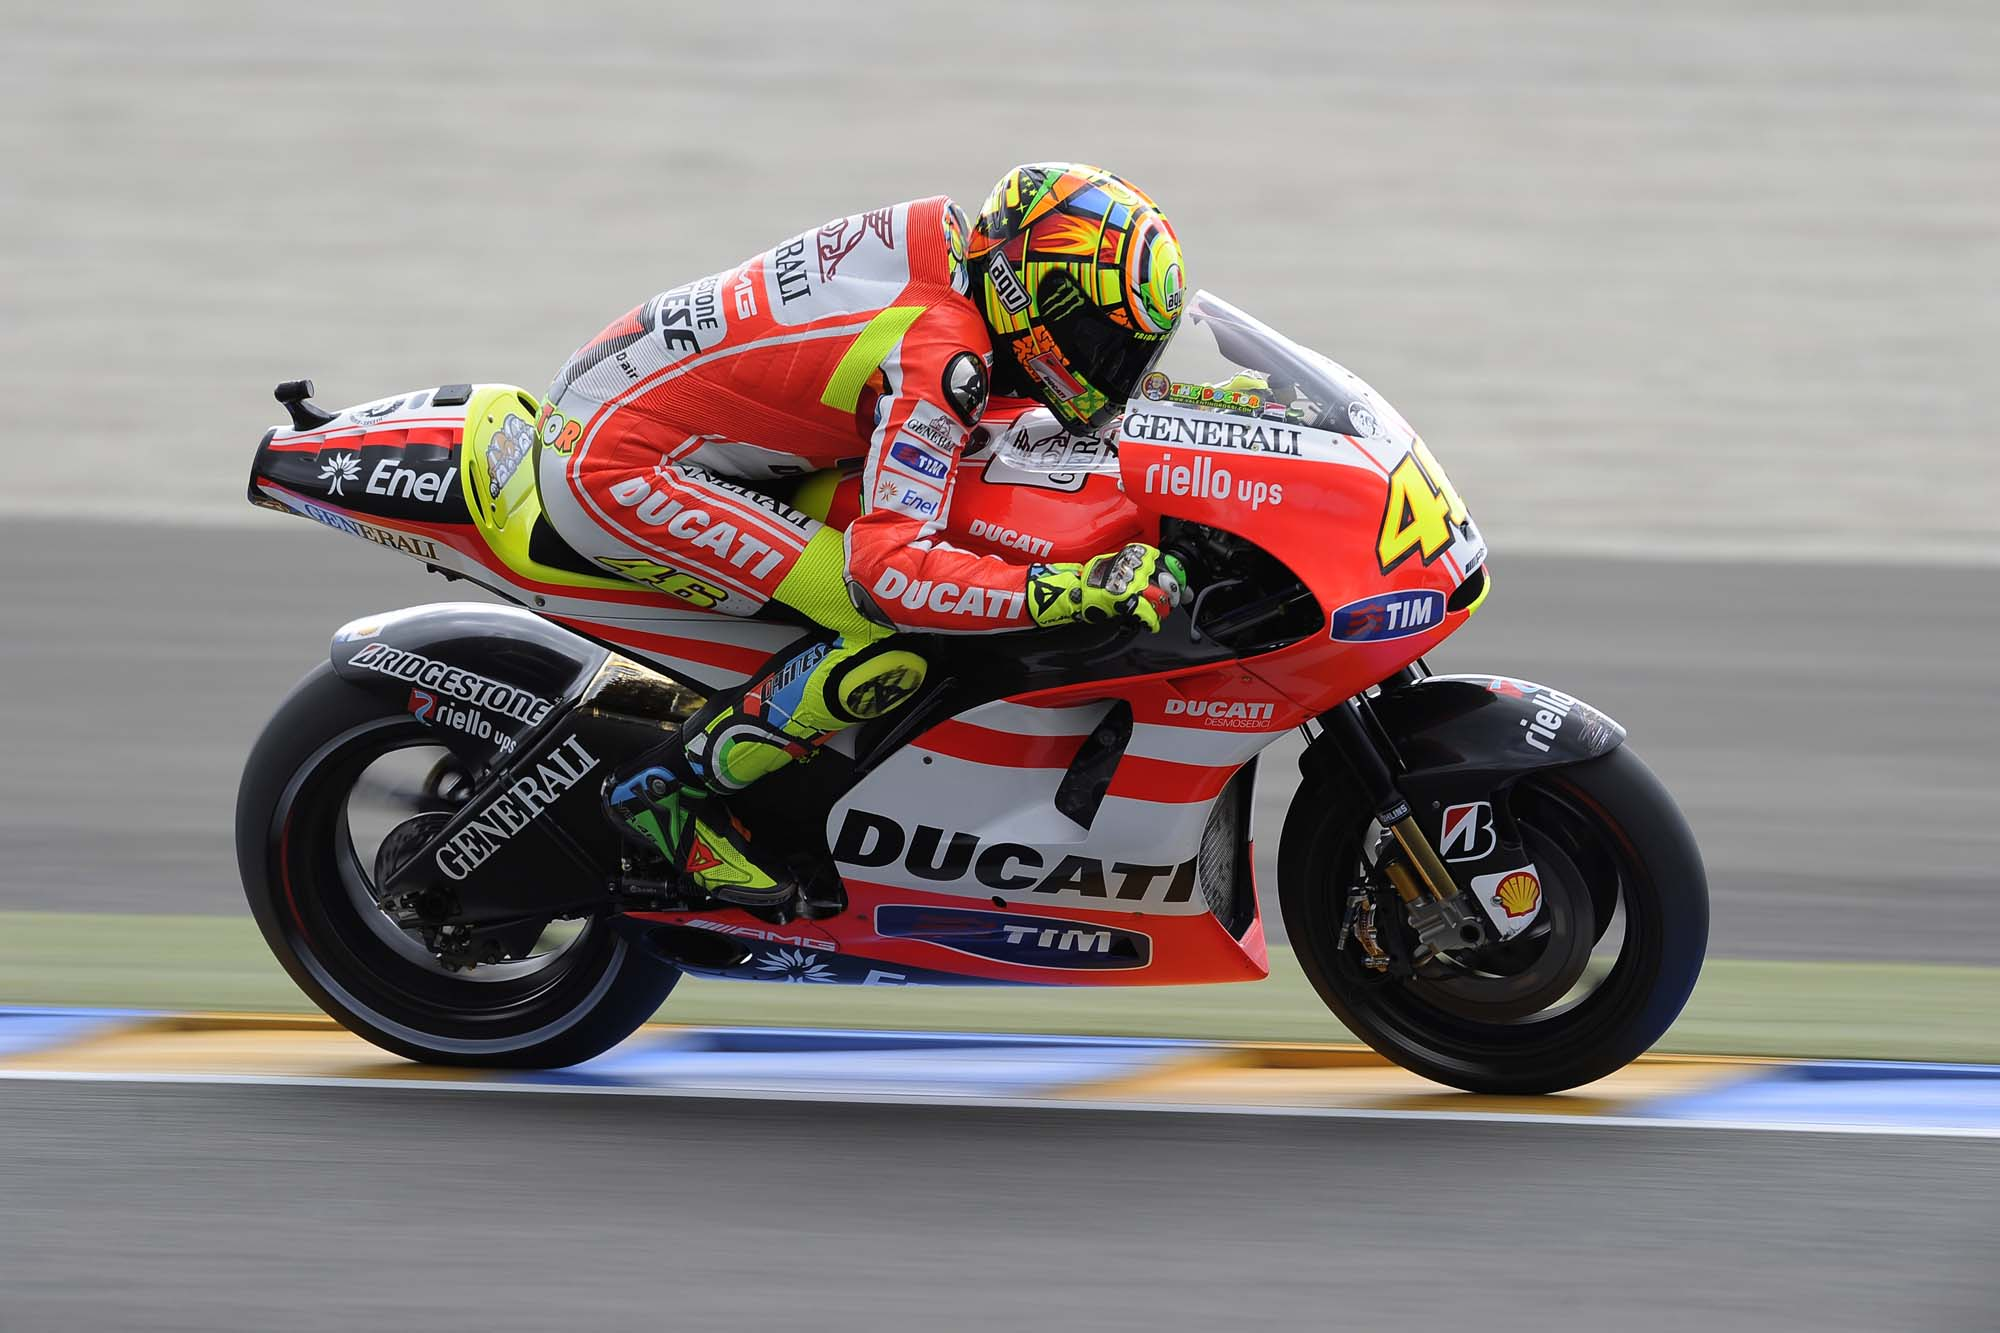 Stoner & Rossi's Ducati MotoGP Bikes up for Auction - Asphalt & Rubber